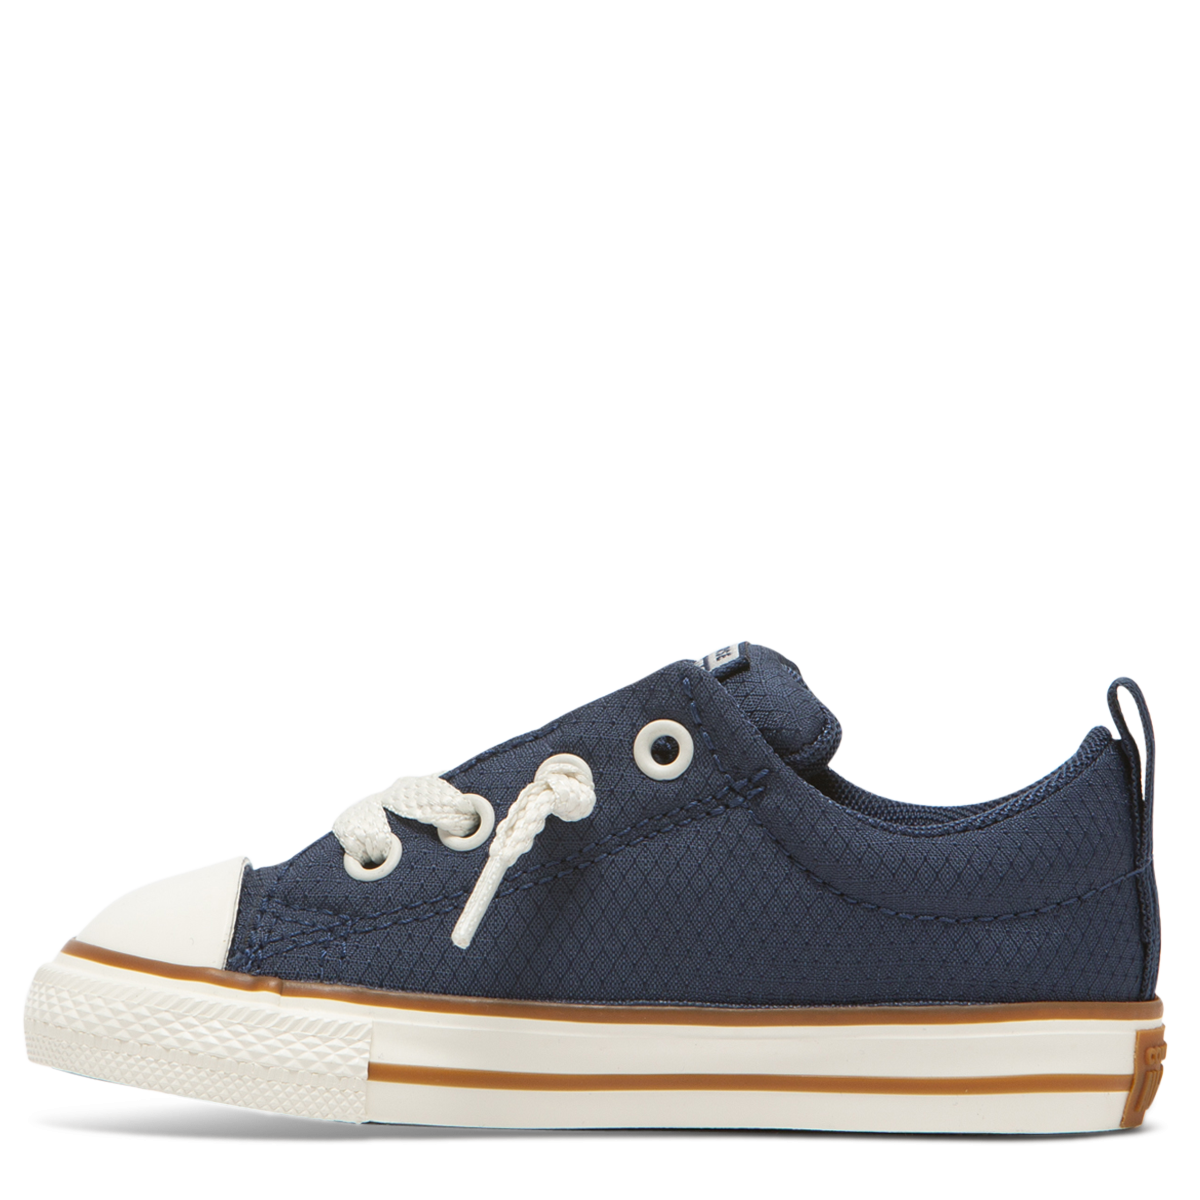 5bbe8b290ae3 Converse Chuck Taylor All Star Street Pinstripe Toddler Low Top Navy 763525C